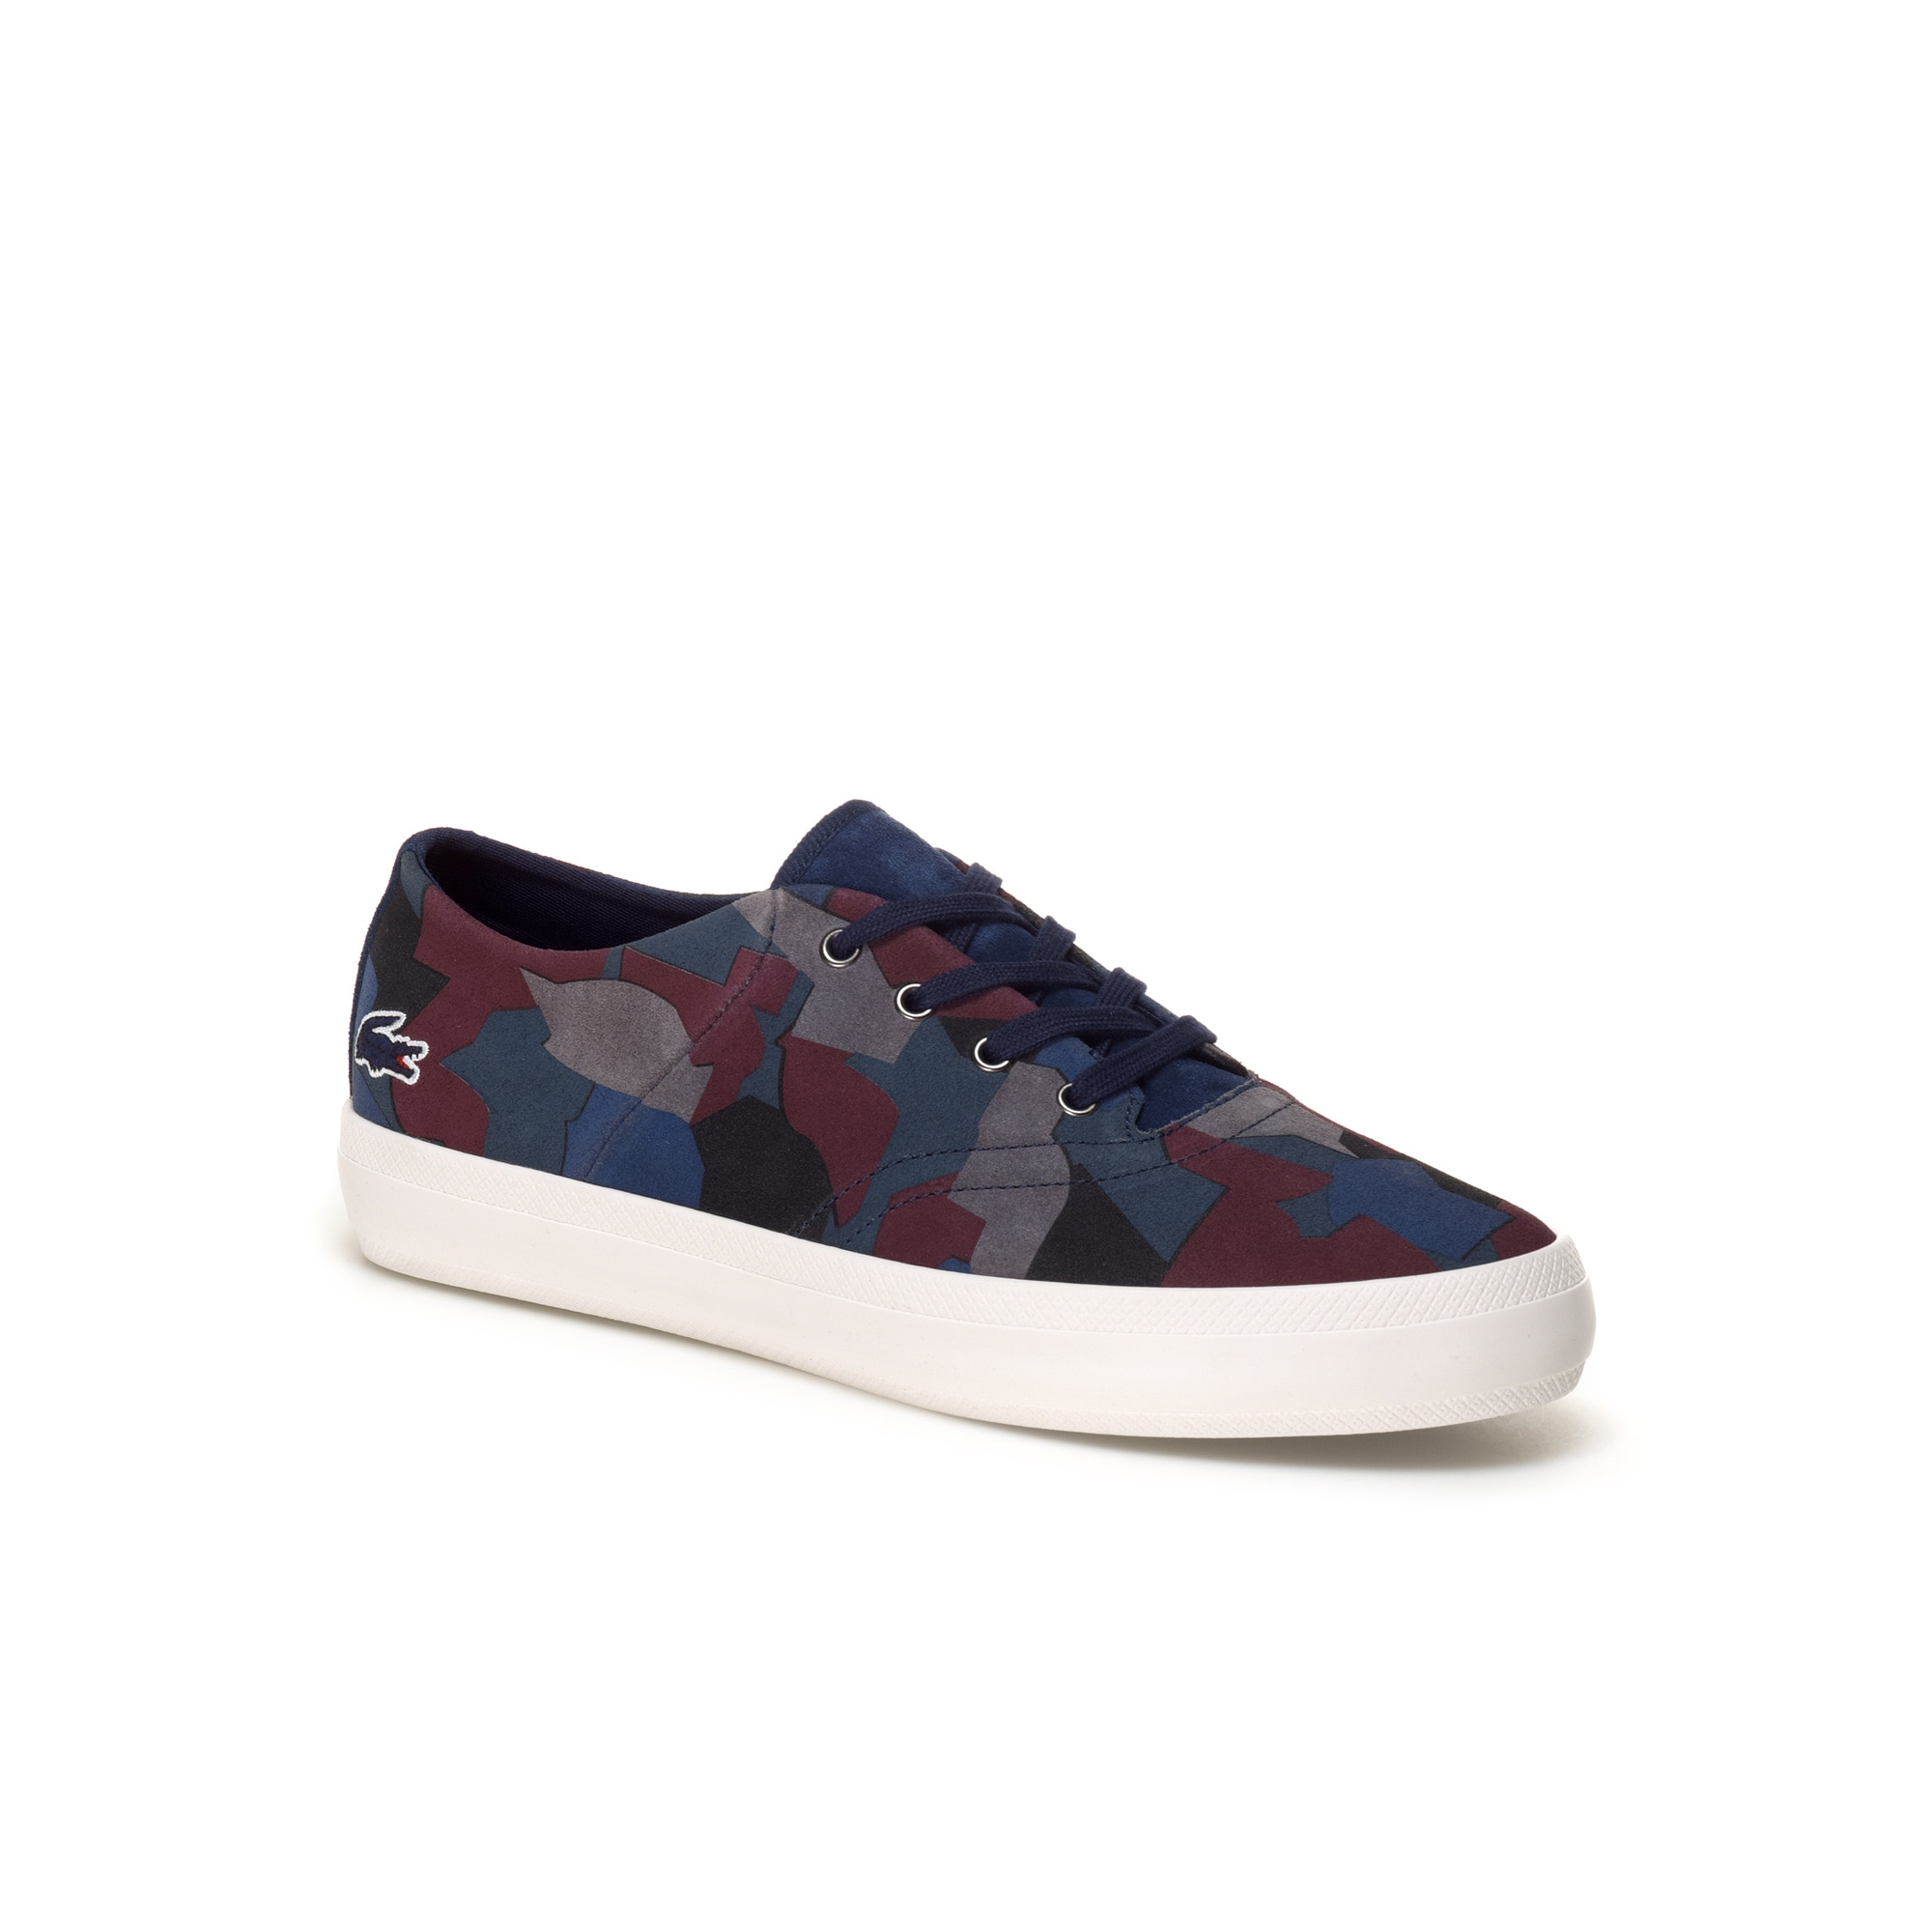 Lacoste LIVE René Chunky sneakers in printed suedette